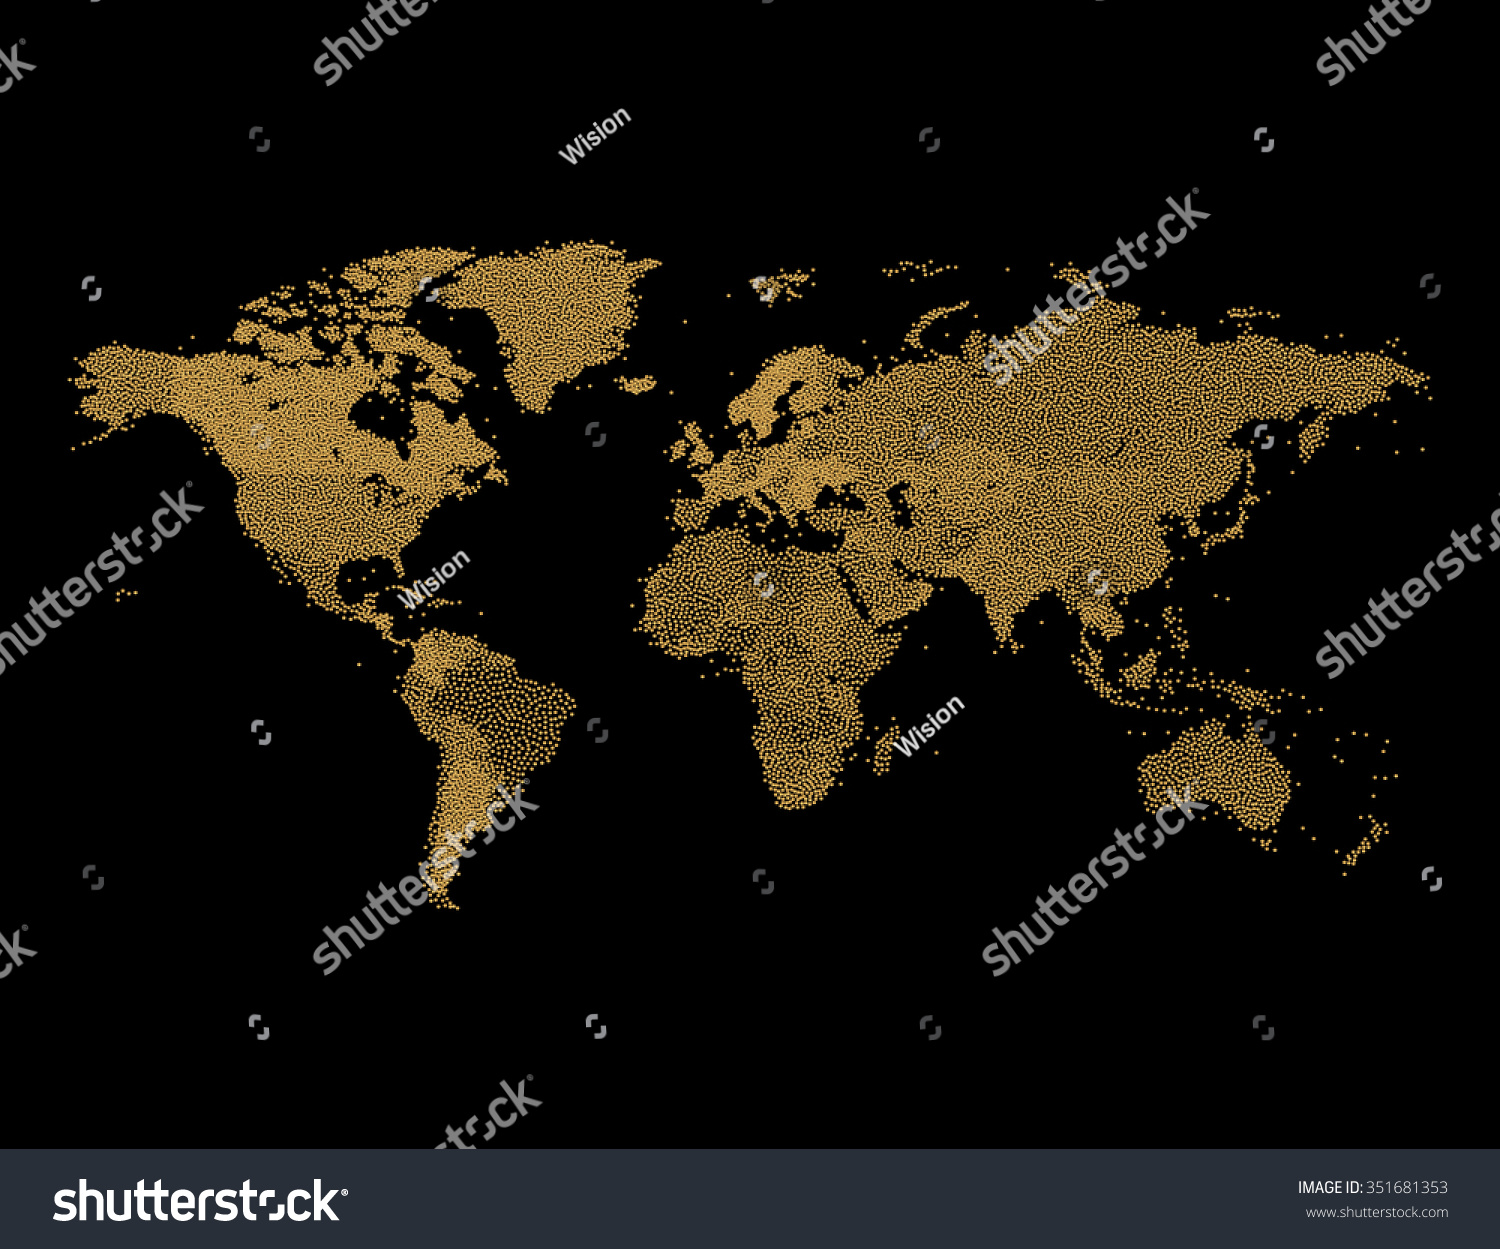 Gold Glitter World Map  Geographical Map Of Earth Made Of Glittering Dots